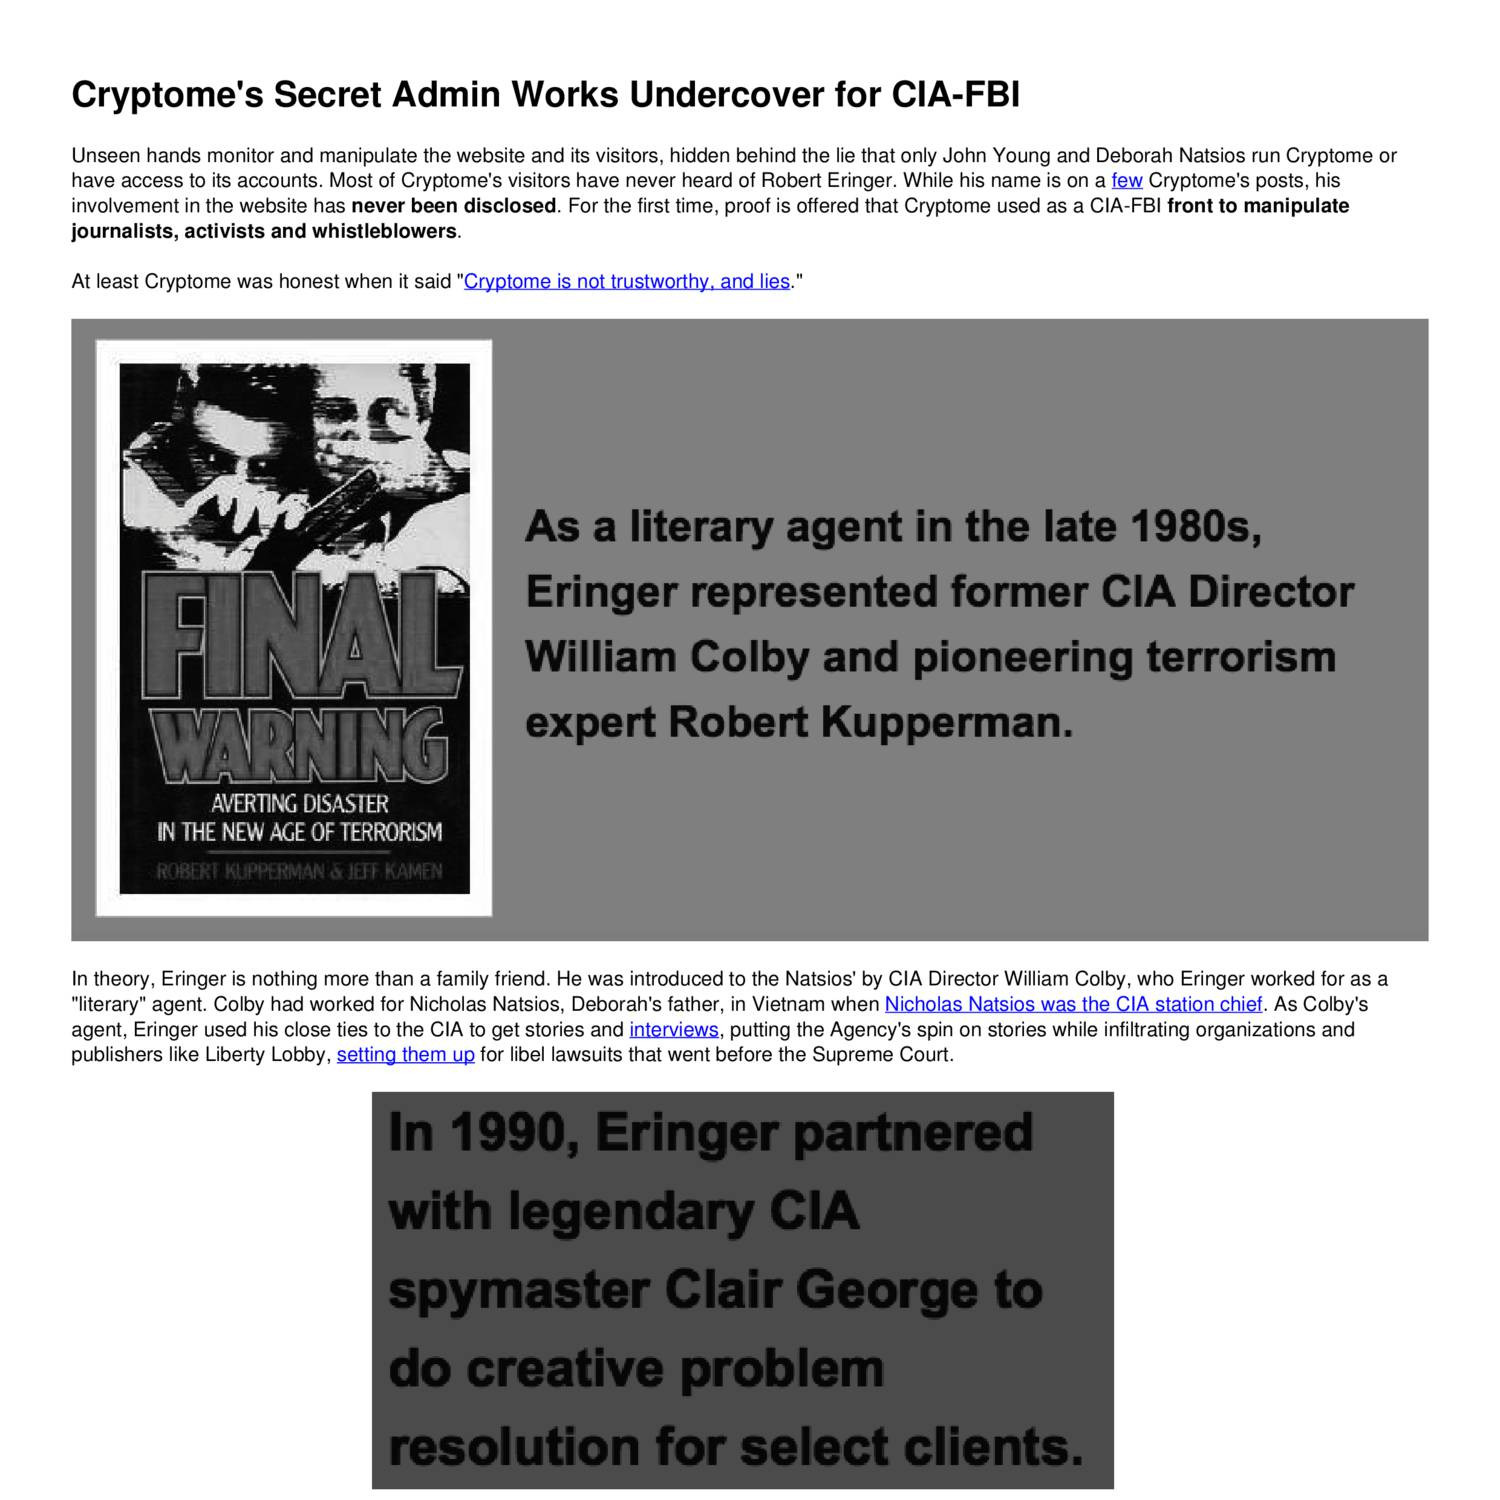 Cryptome's Secret Admin Works Undercover for CIA-FBI pdf | DocDroid